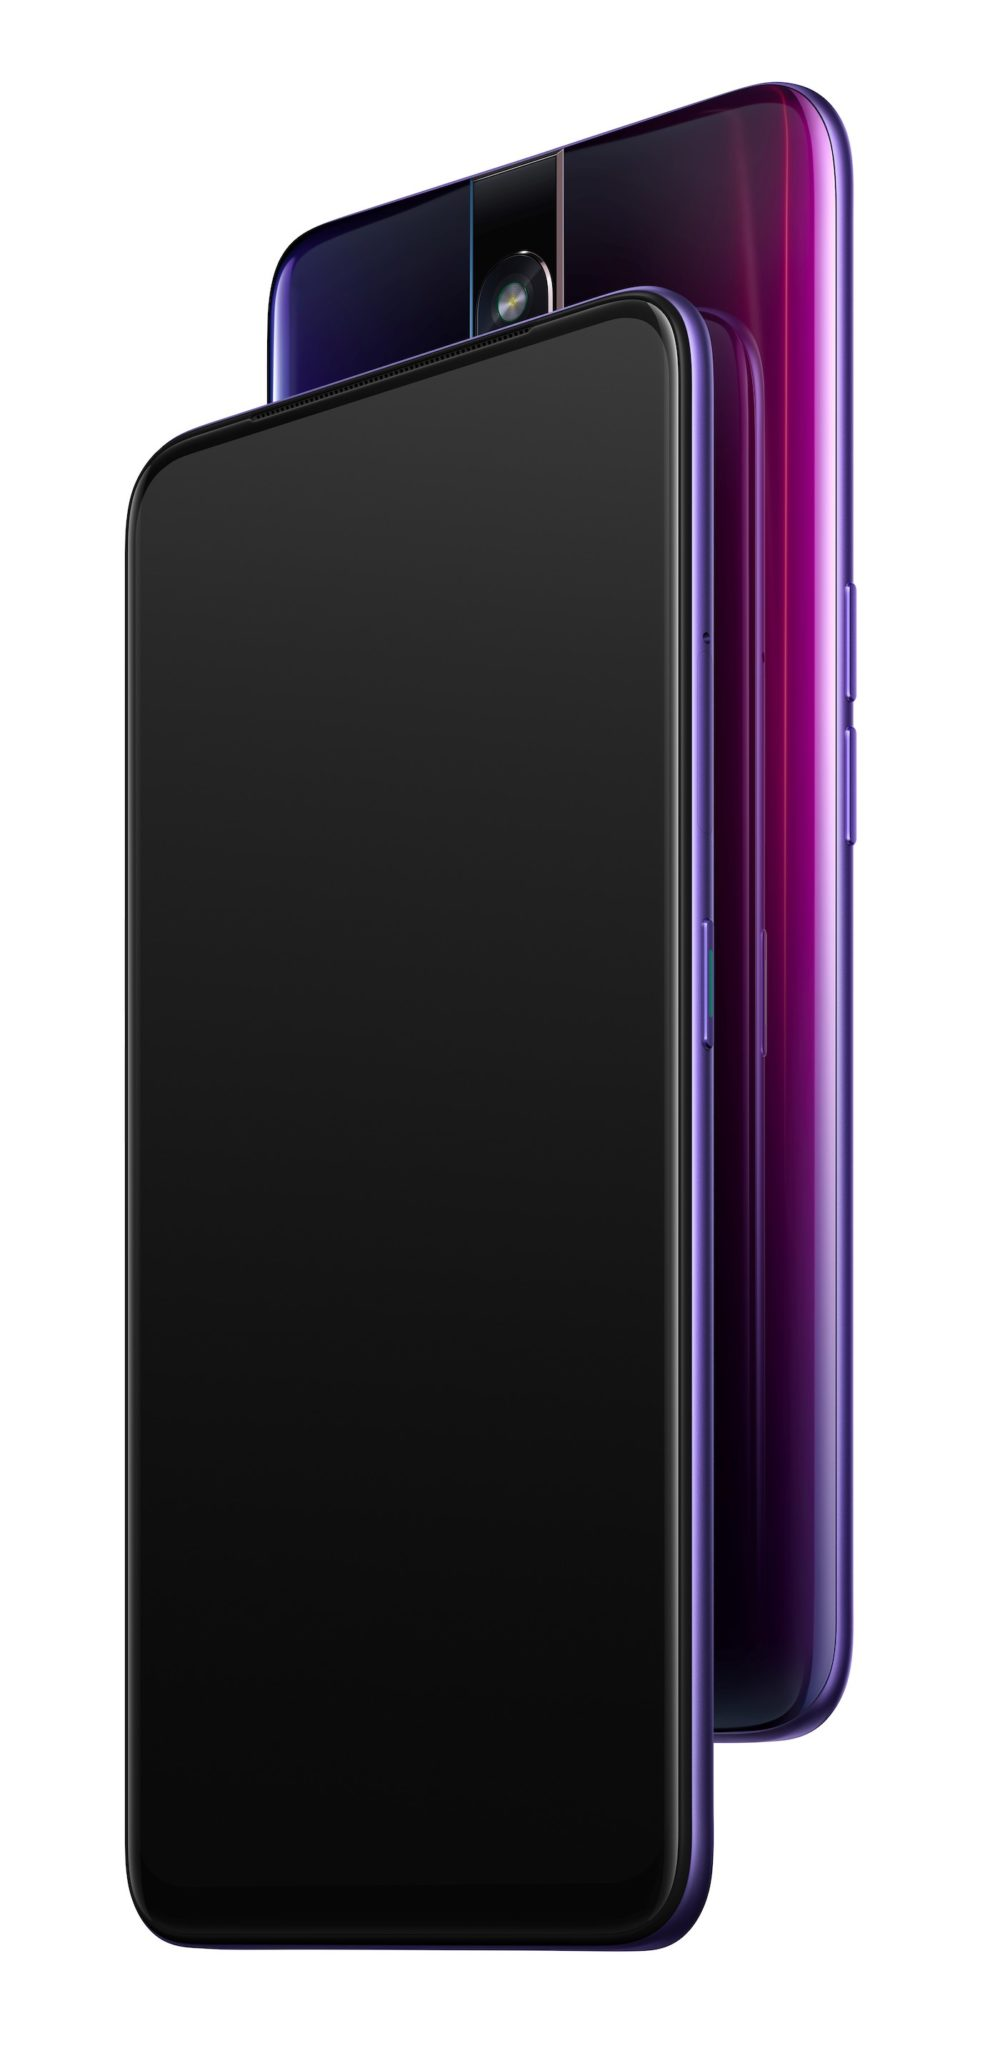 OPPO launches the new F11 Pro with 48MP Dual Rear Camera